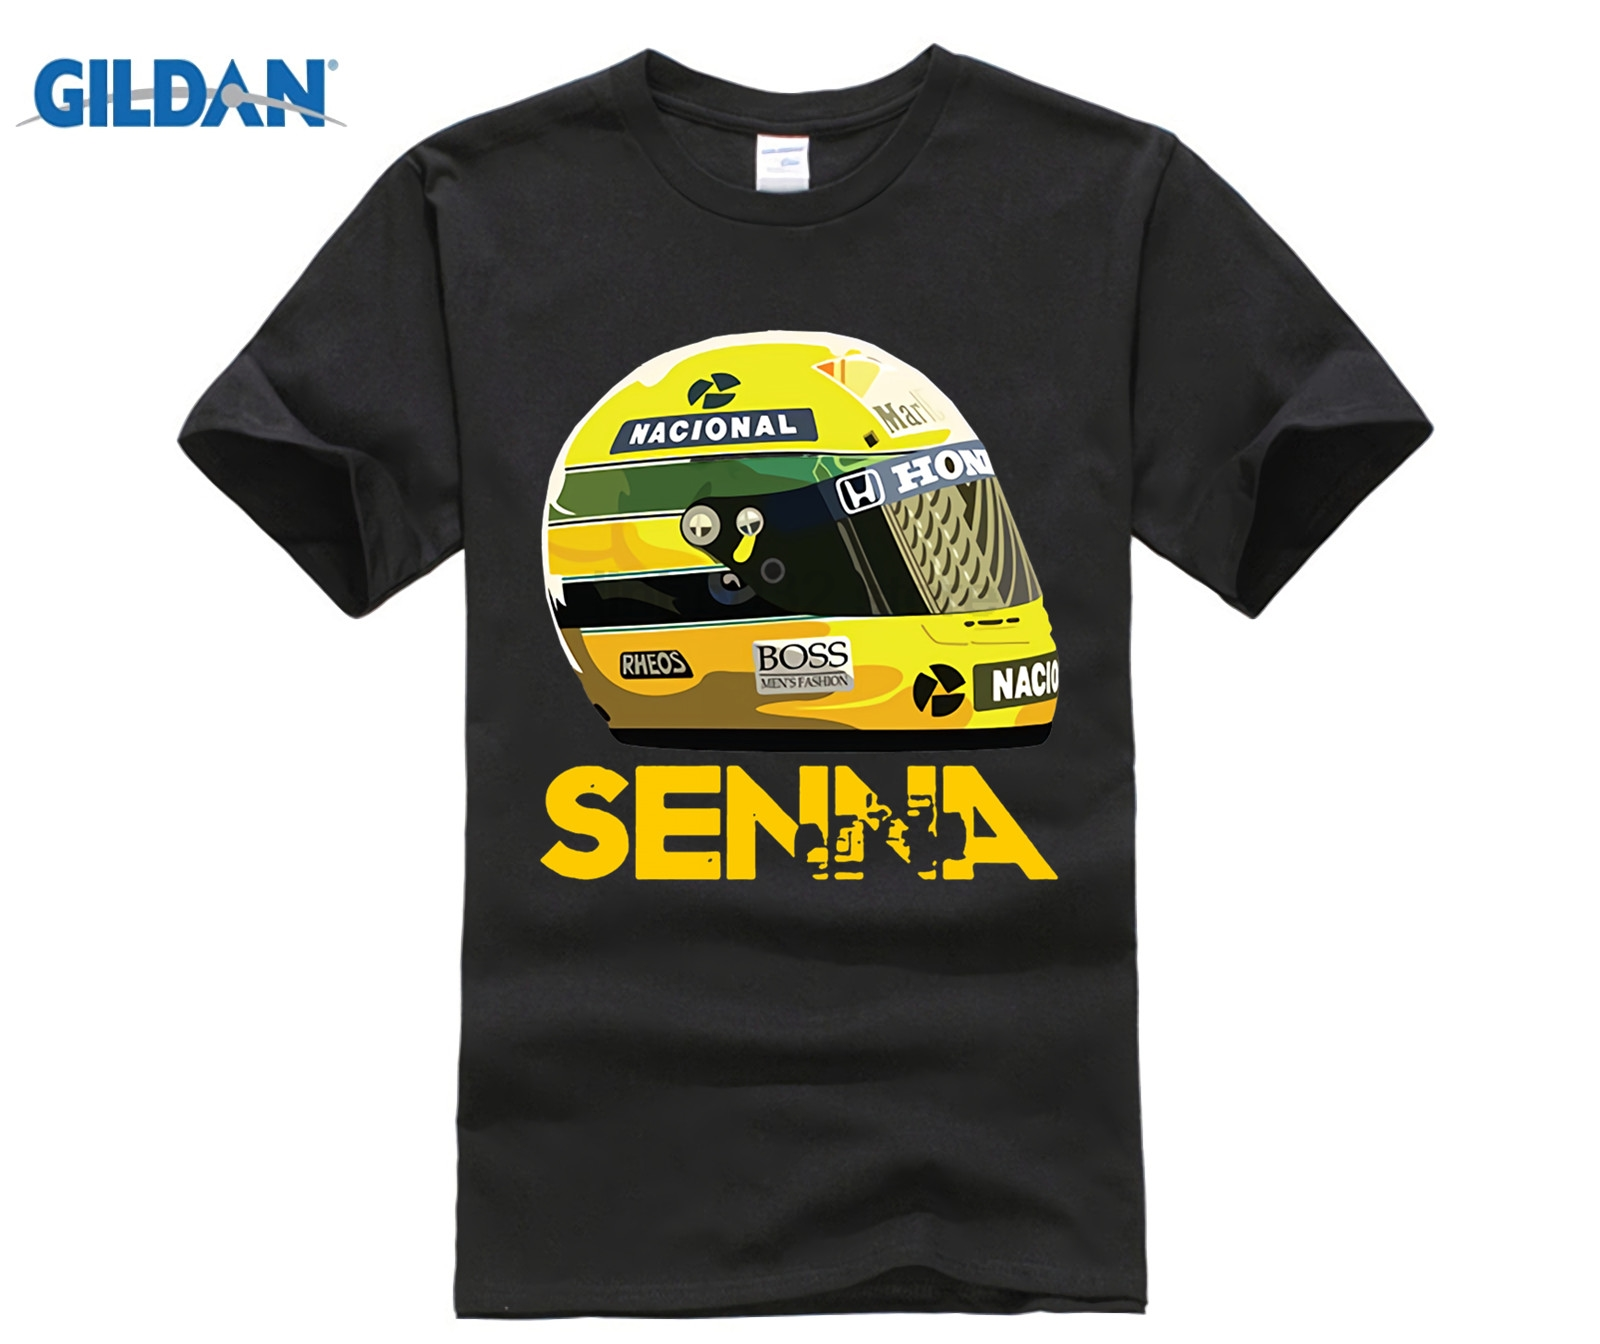 t-shirts-ayrton-font-b-senna-b-font-helmet-tops-1-race-tees-man-cotton-short-sleeve-t-shirts-classic-youth-men-cotton-o-neck